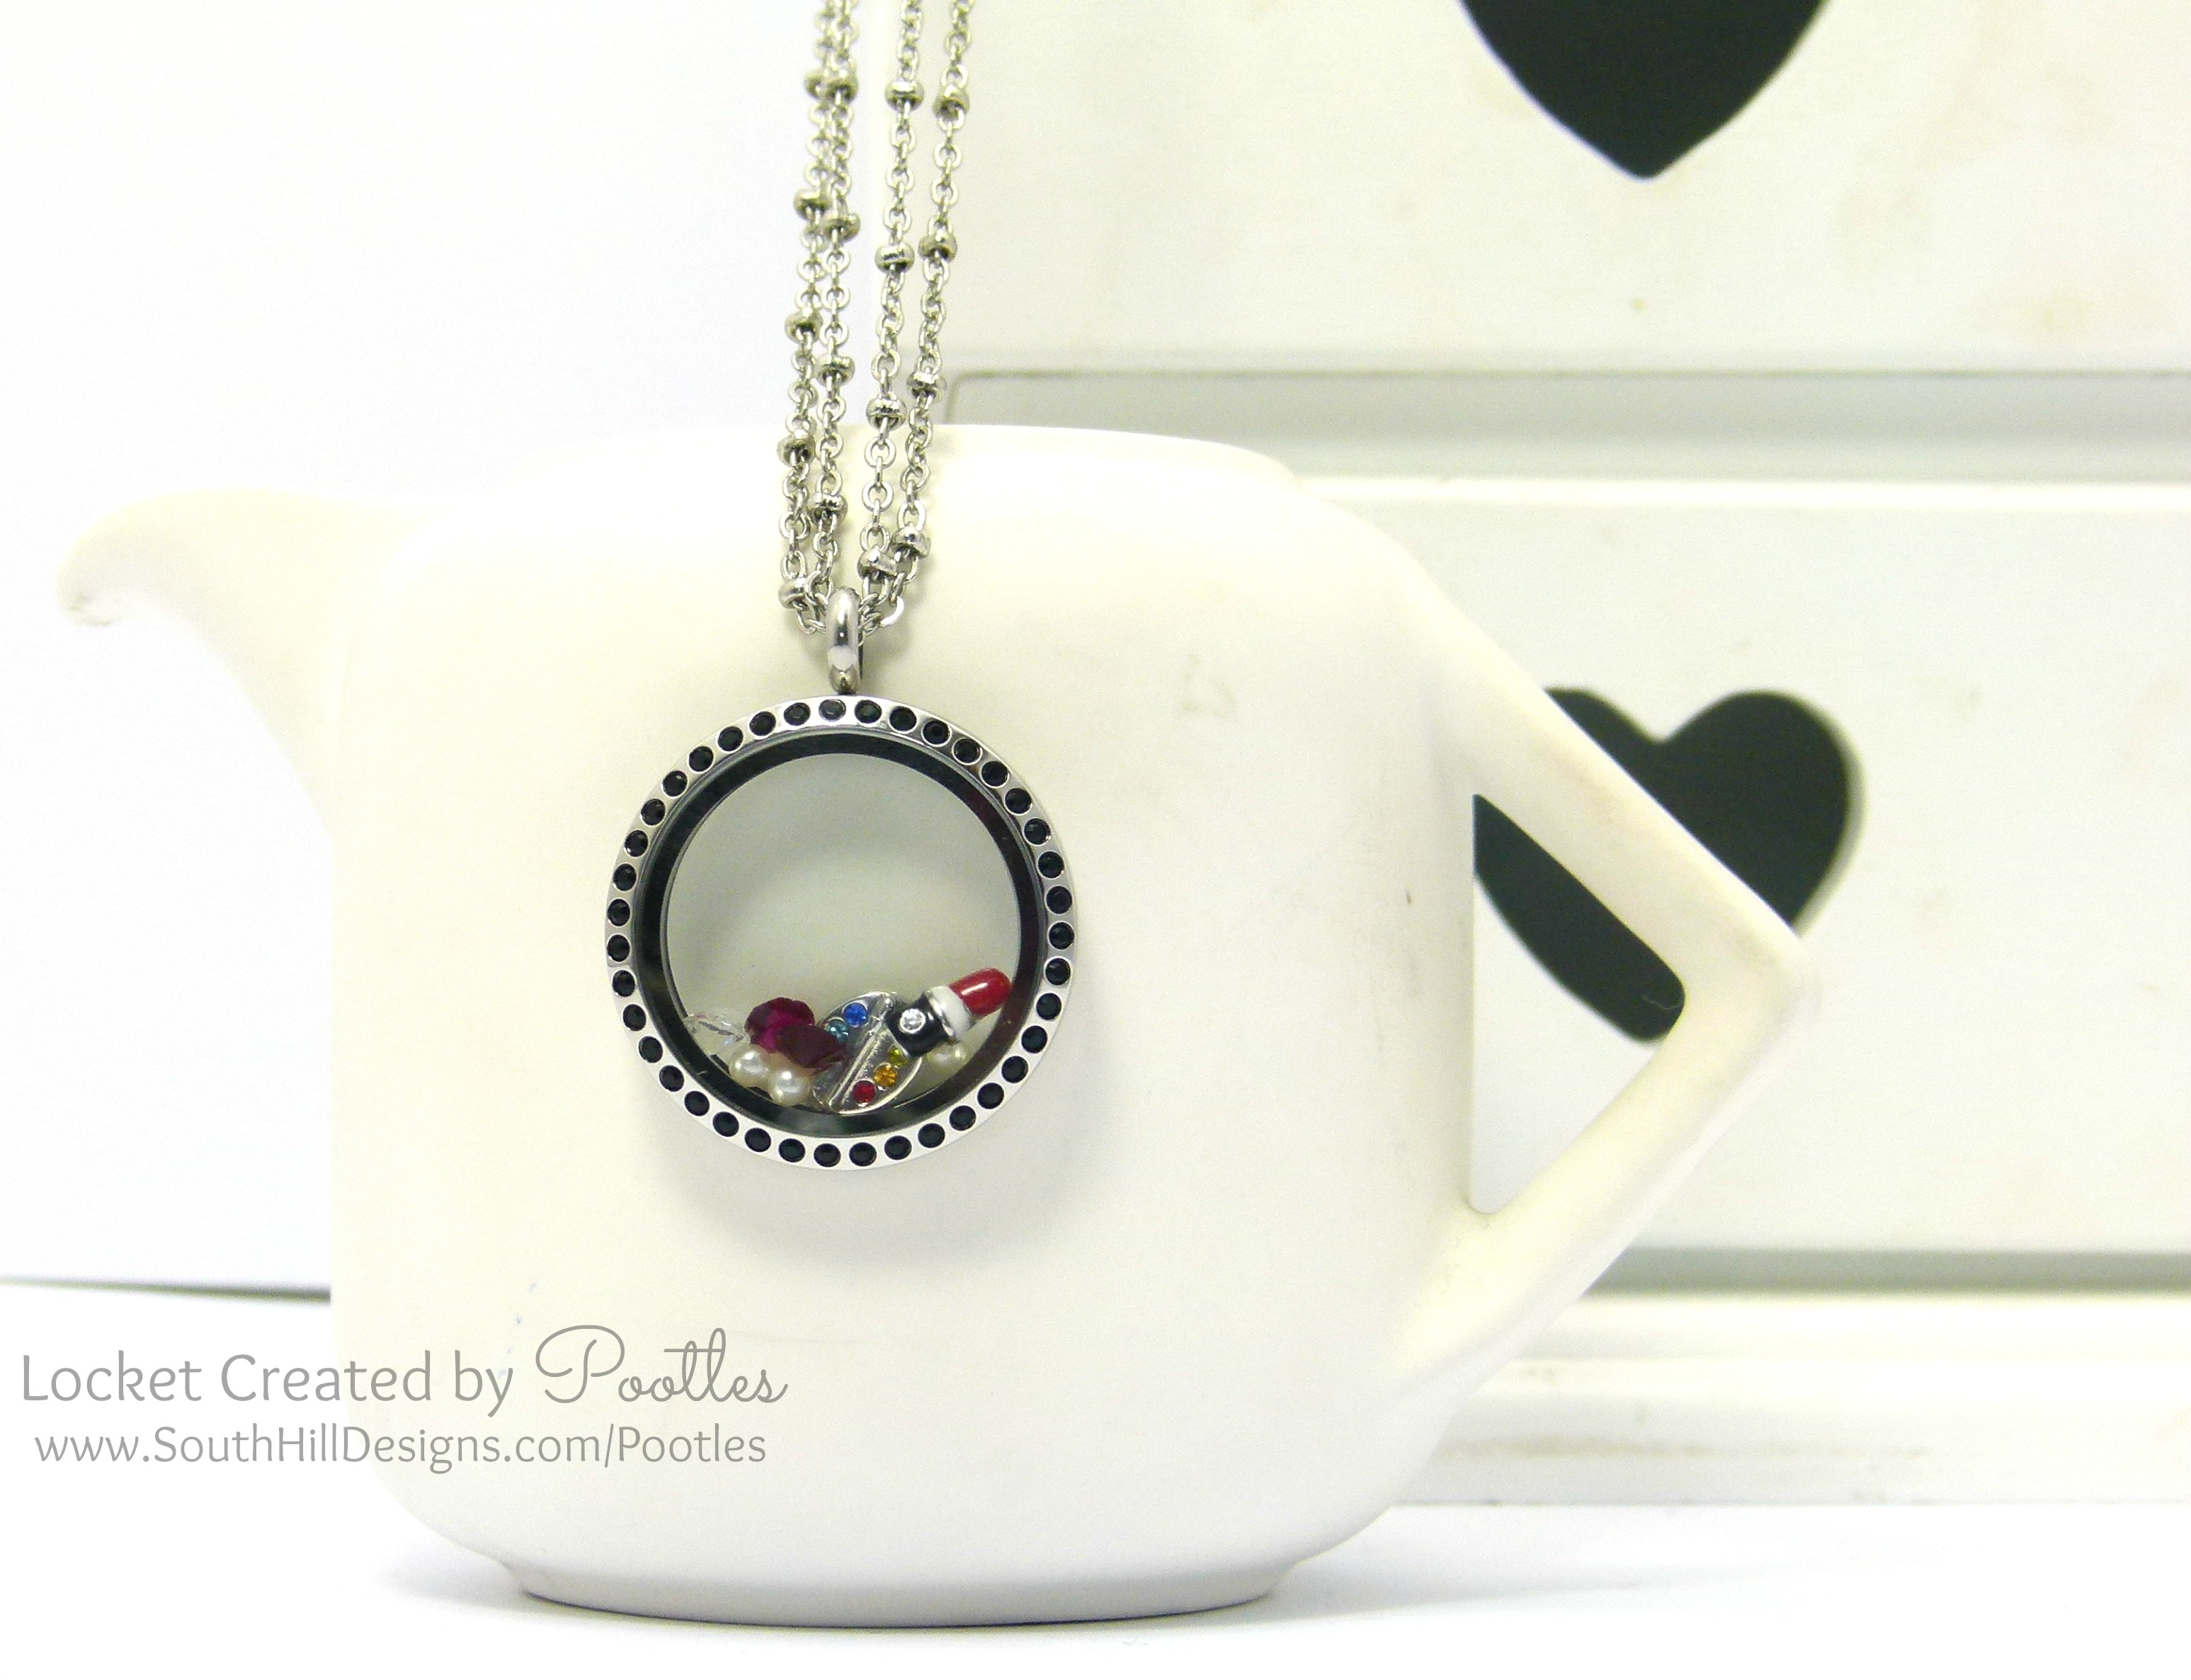 Makeup Artist's Locket From